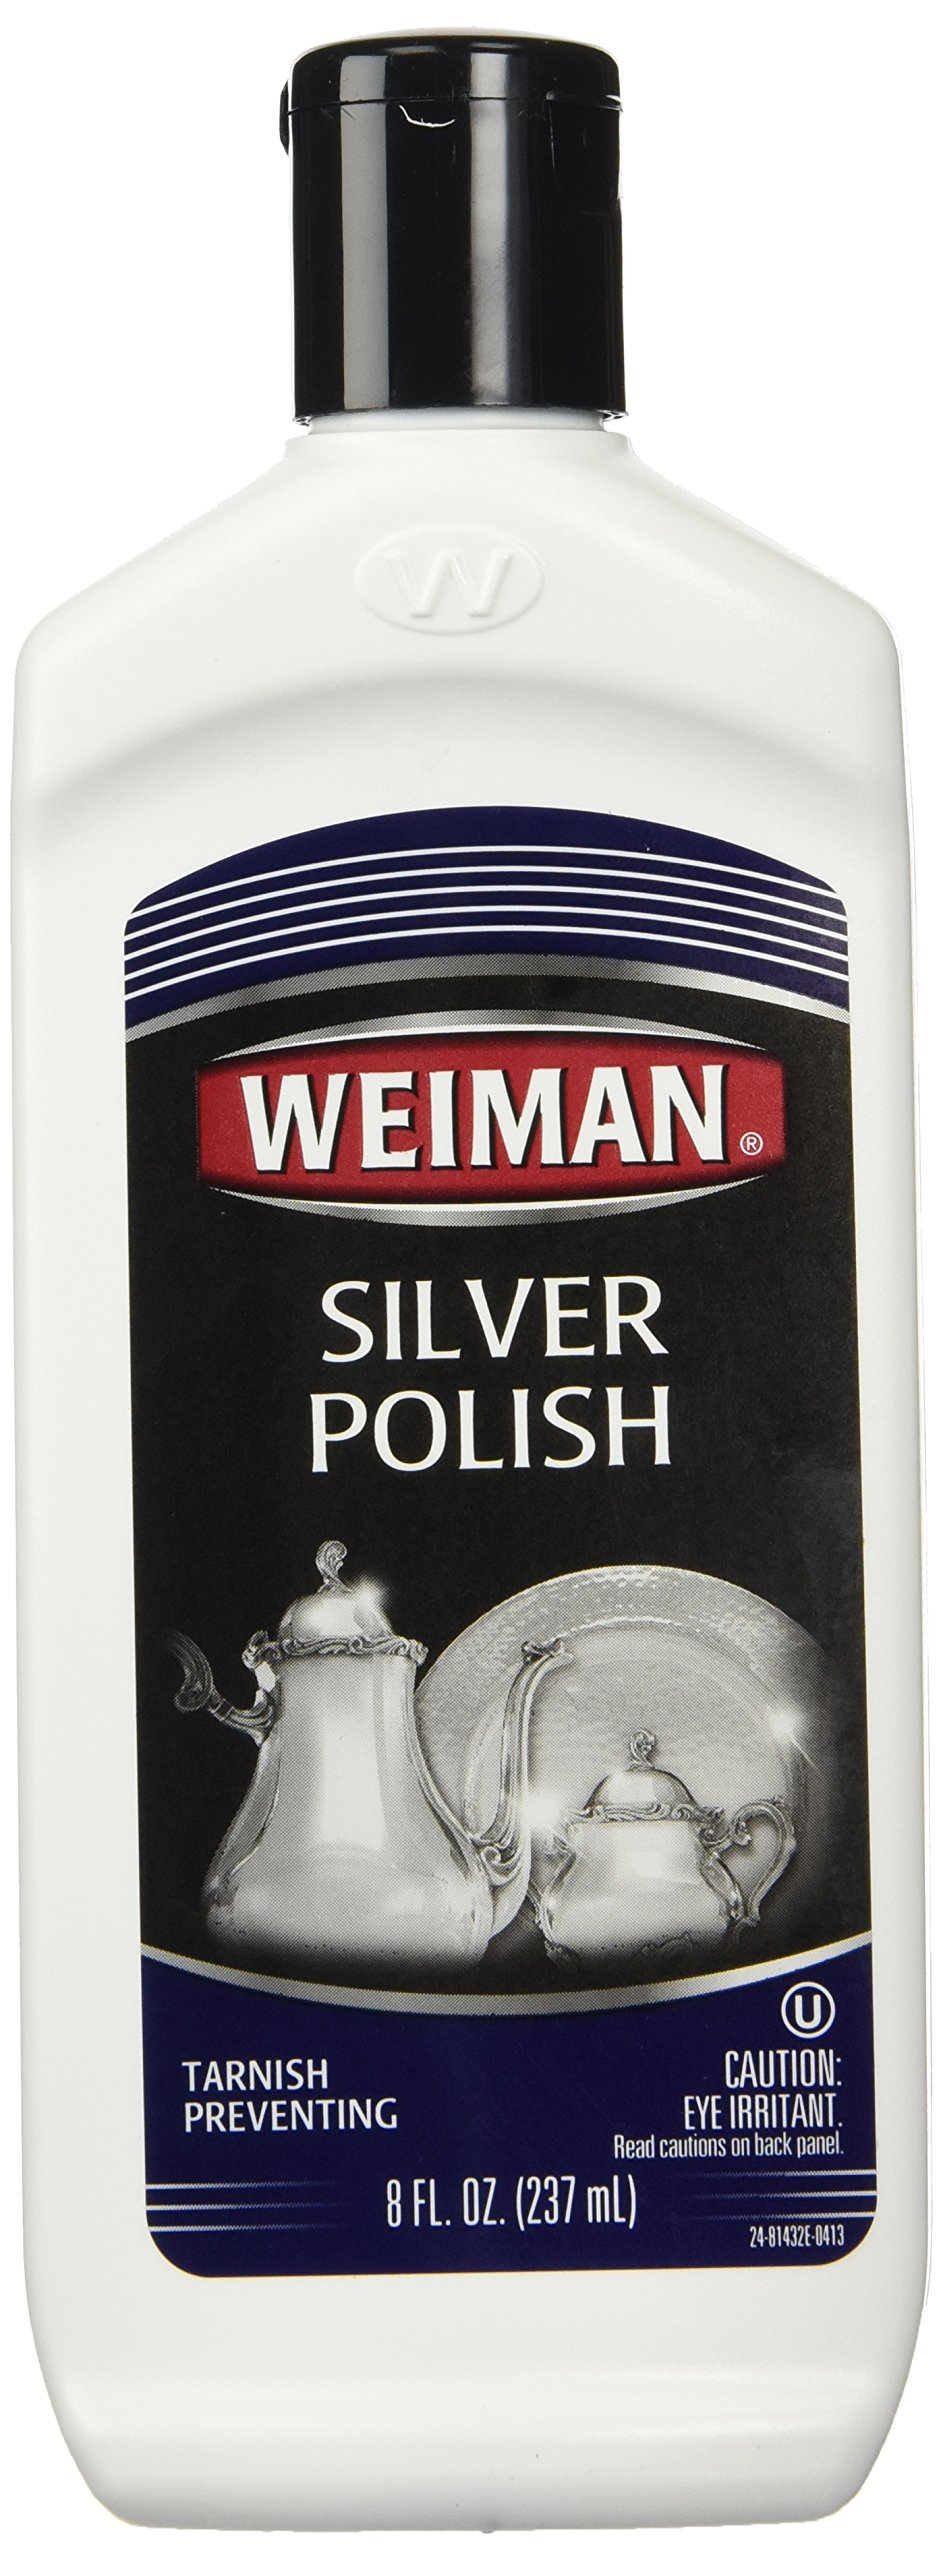 Weiman Silver Polish - Polish Silver, Jewelry, Sterling Silver, Antique Silver, Gold, Brass, Copper and Aluminum - 8 Ounce